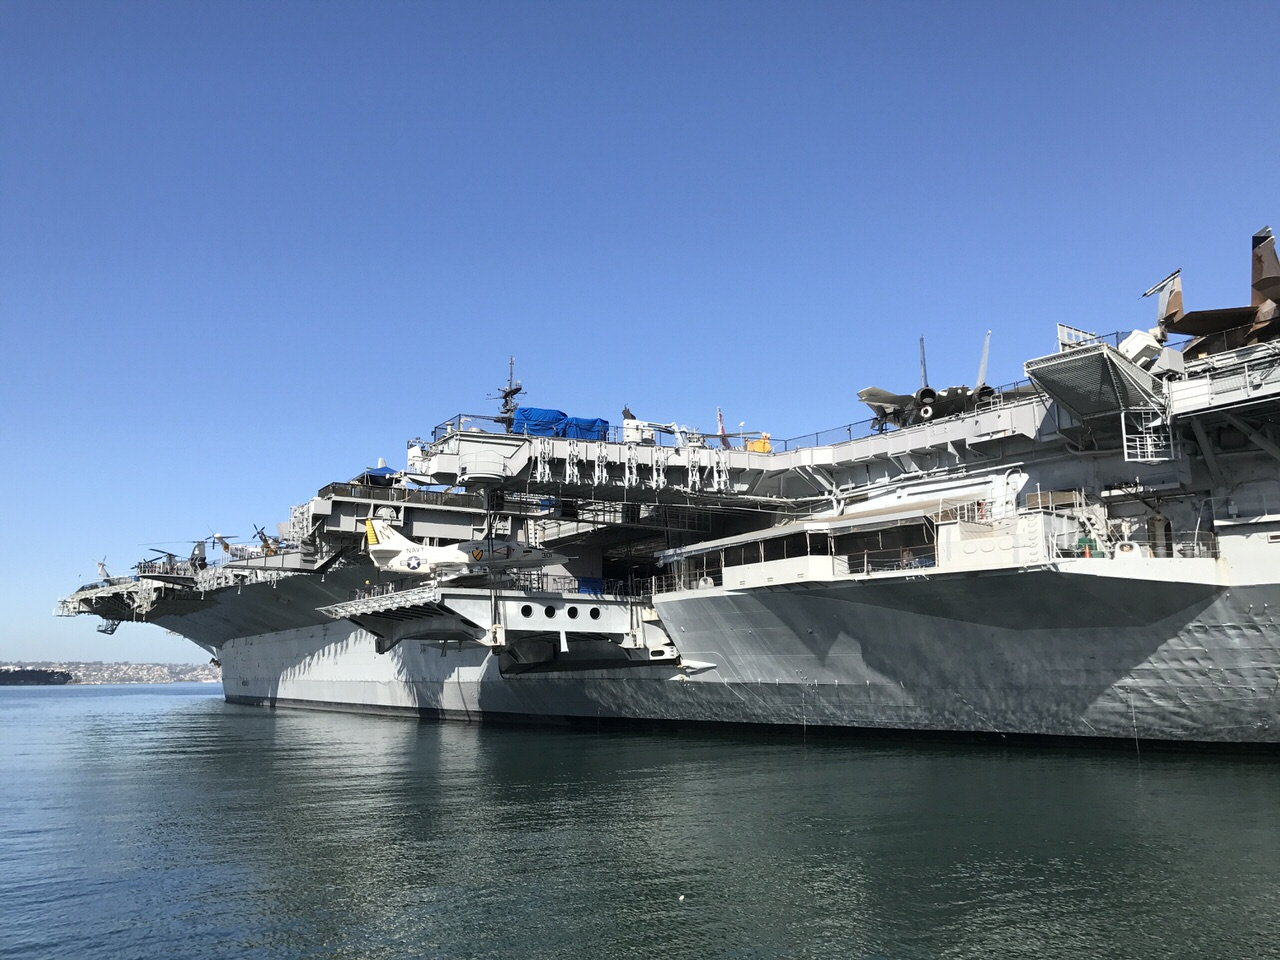 Uss midway museum 0546